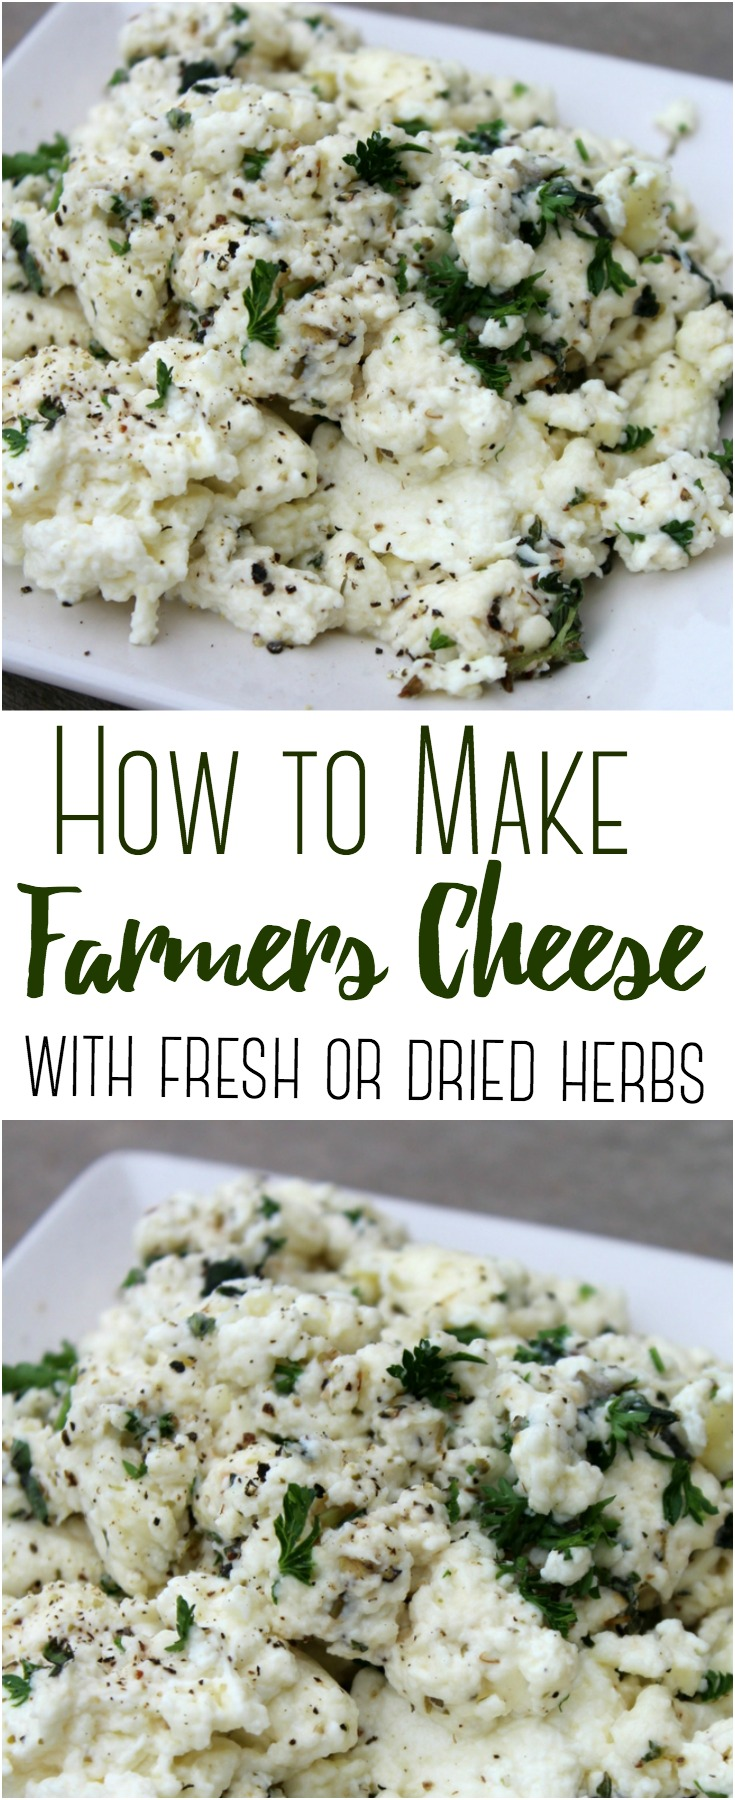 Transform a gallon of raw milk into a pound of farmers cheese, flavored with herbs and spices! #rawmilk #cheese #cheesemaking #farmerscheese #homestead